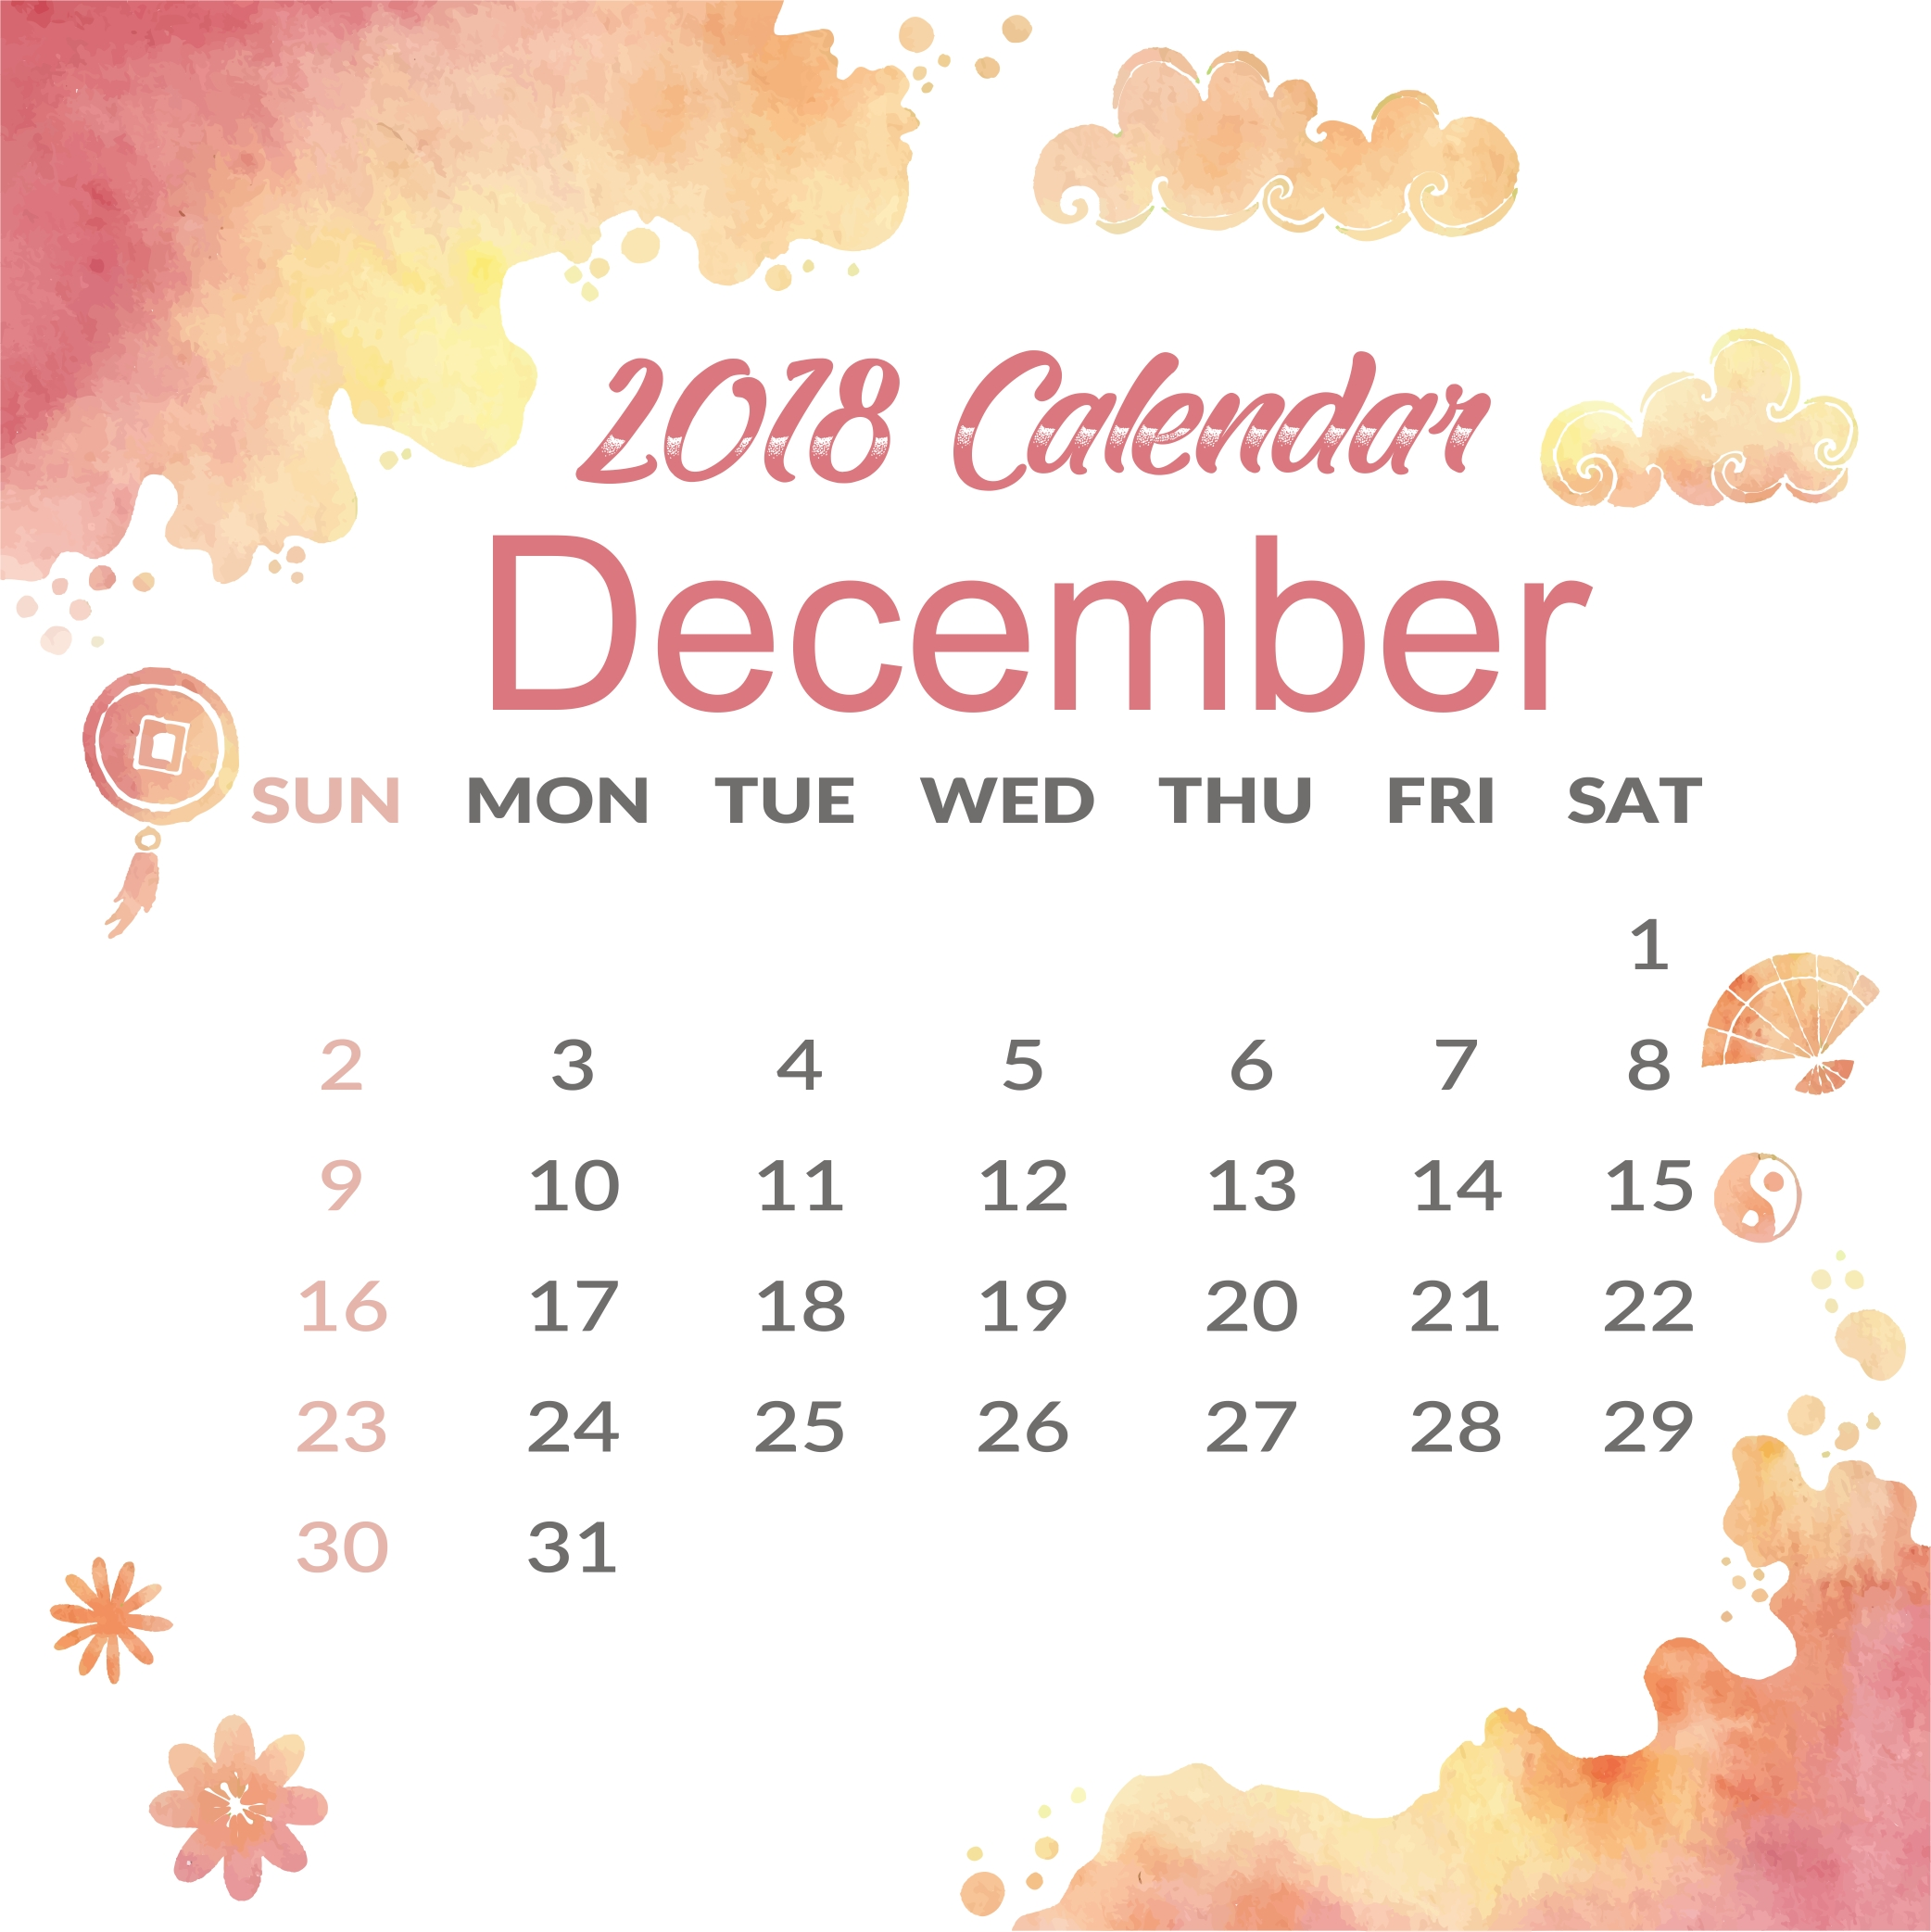 download free printable december 2018 calendar pdf excel word 2018 Stylish Calendar Templates erdferdf